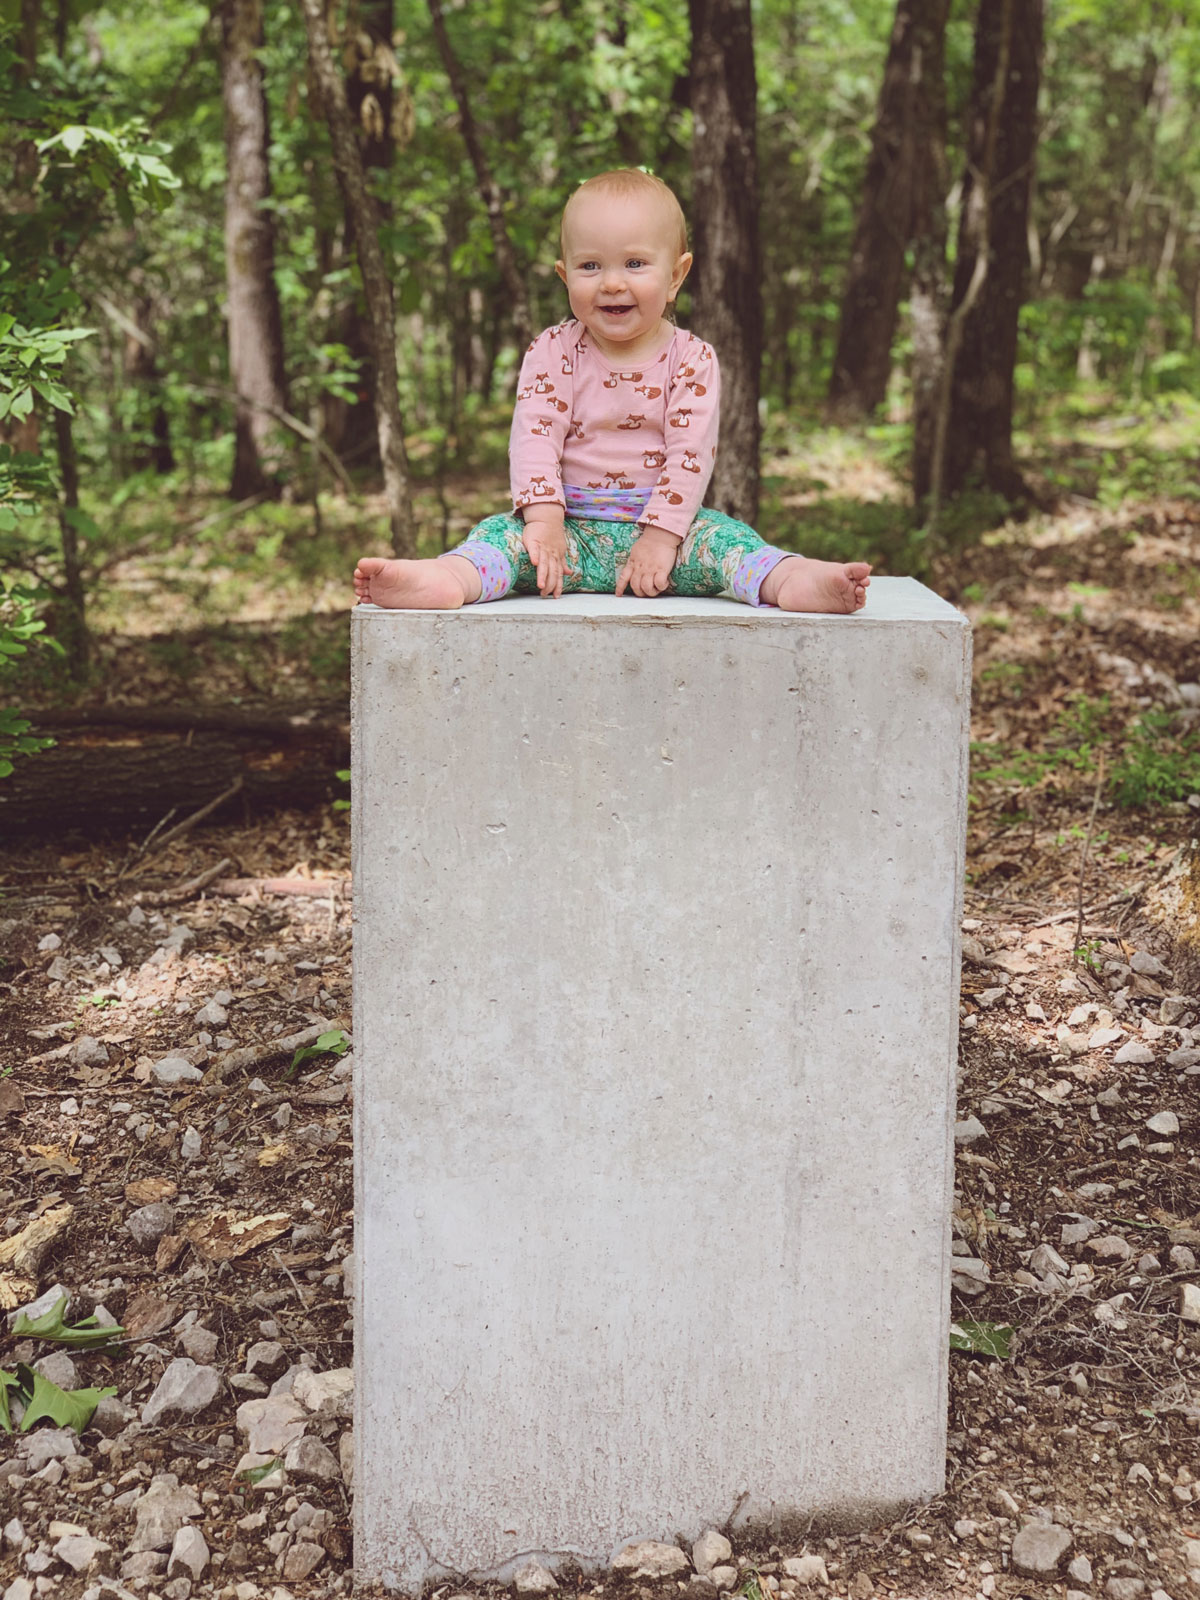 Brandon Gore's beautiful daughter sitting on a concrete art plinth - perhaps the most perfect artwork?